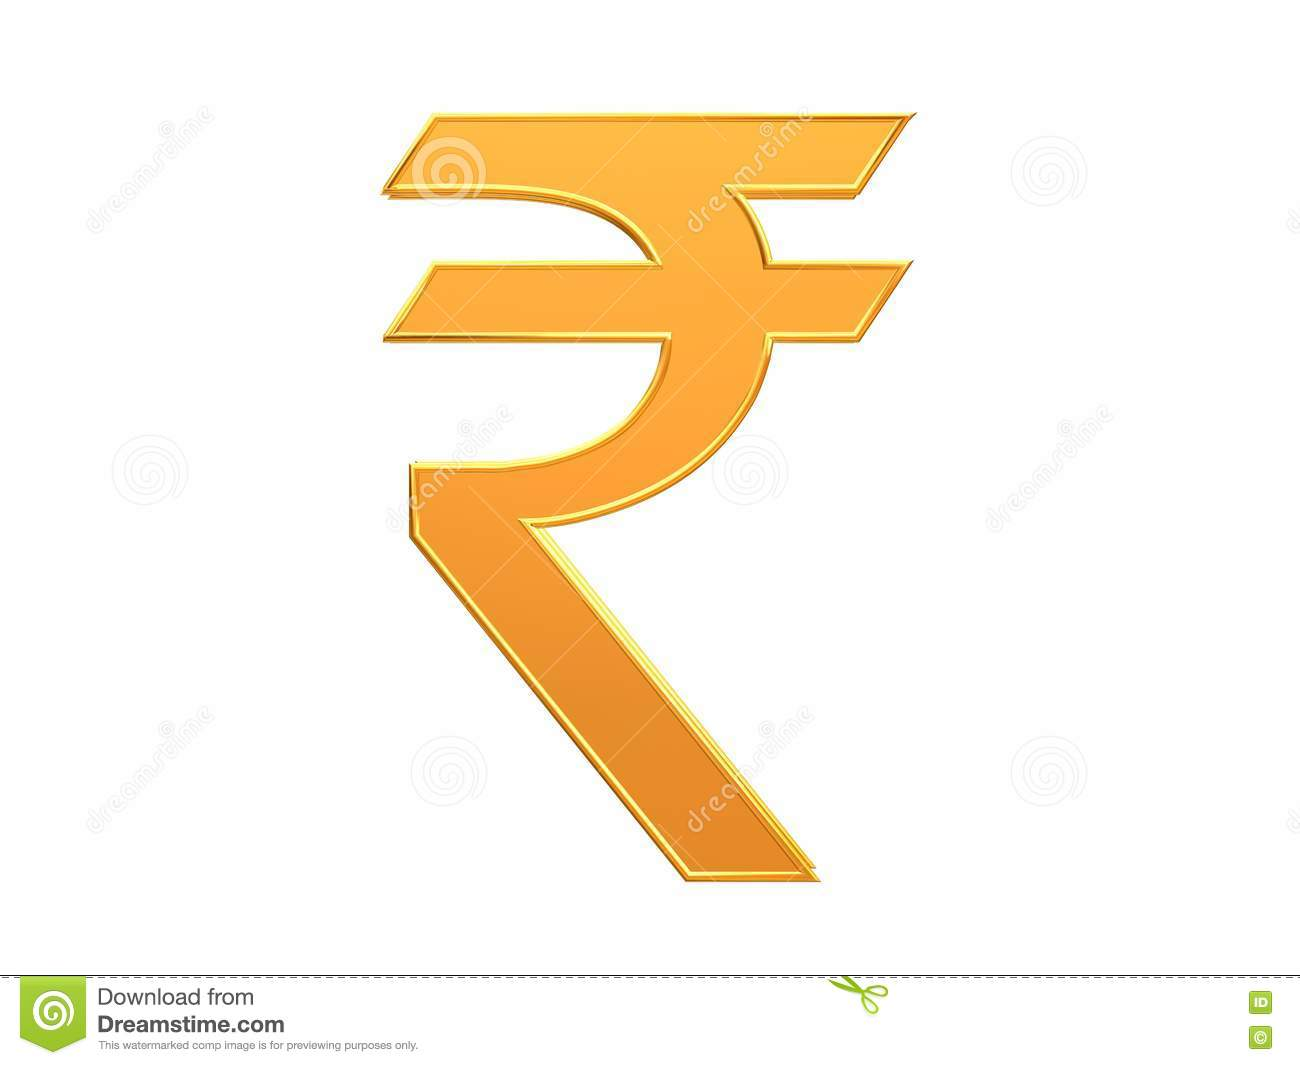 Indian Currency Rupee Symbol Design Stock Illustration